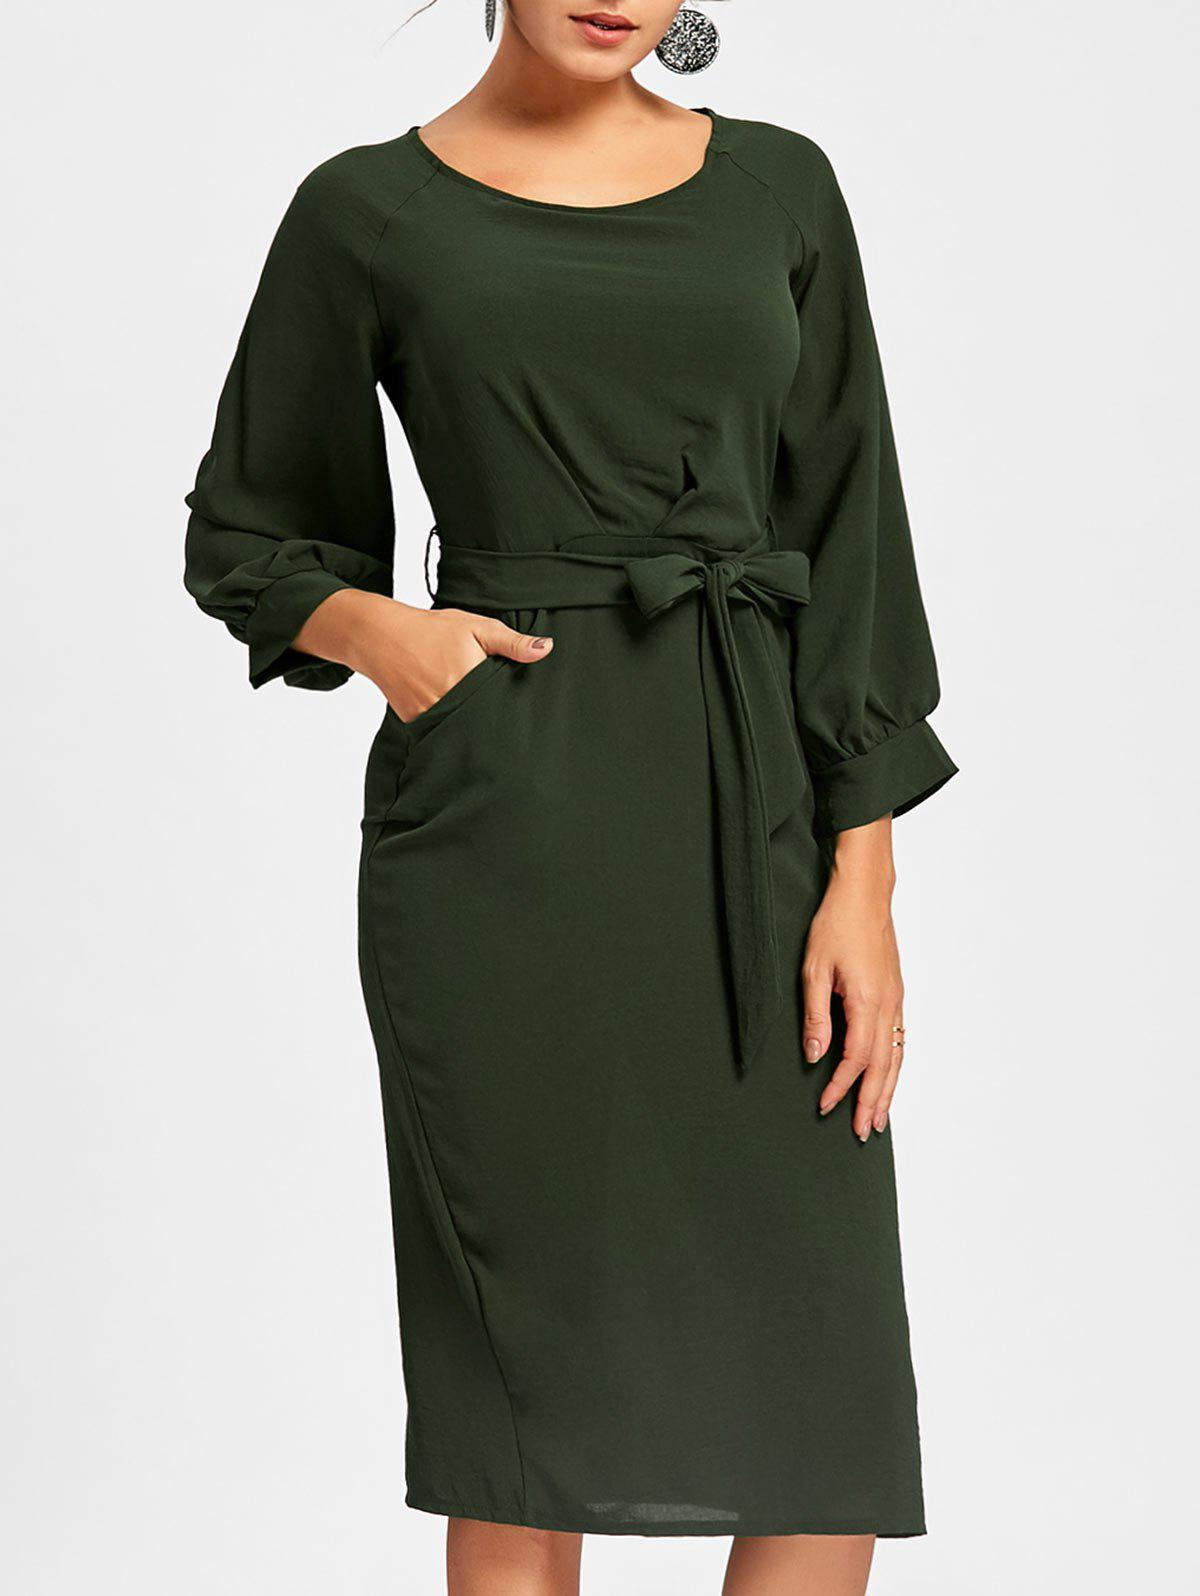 Back Slit Midi Sheath Dress - DEEP GREEN L